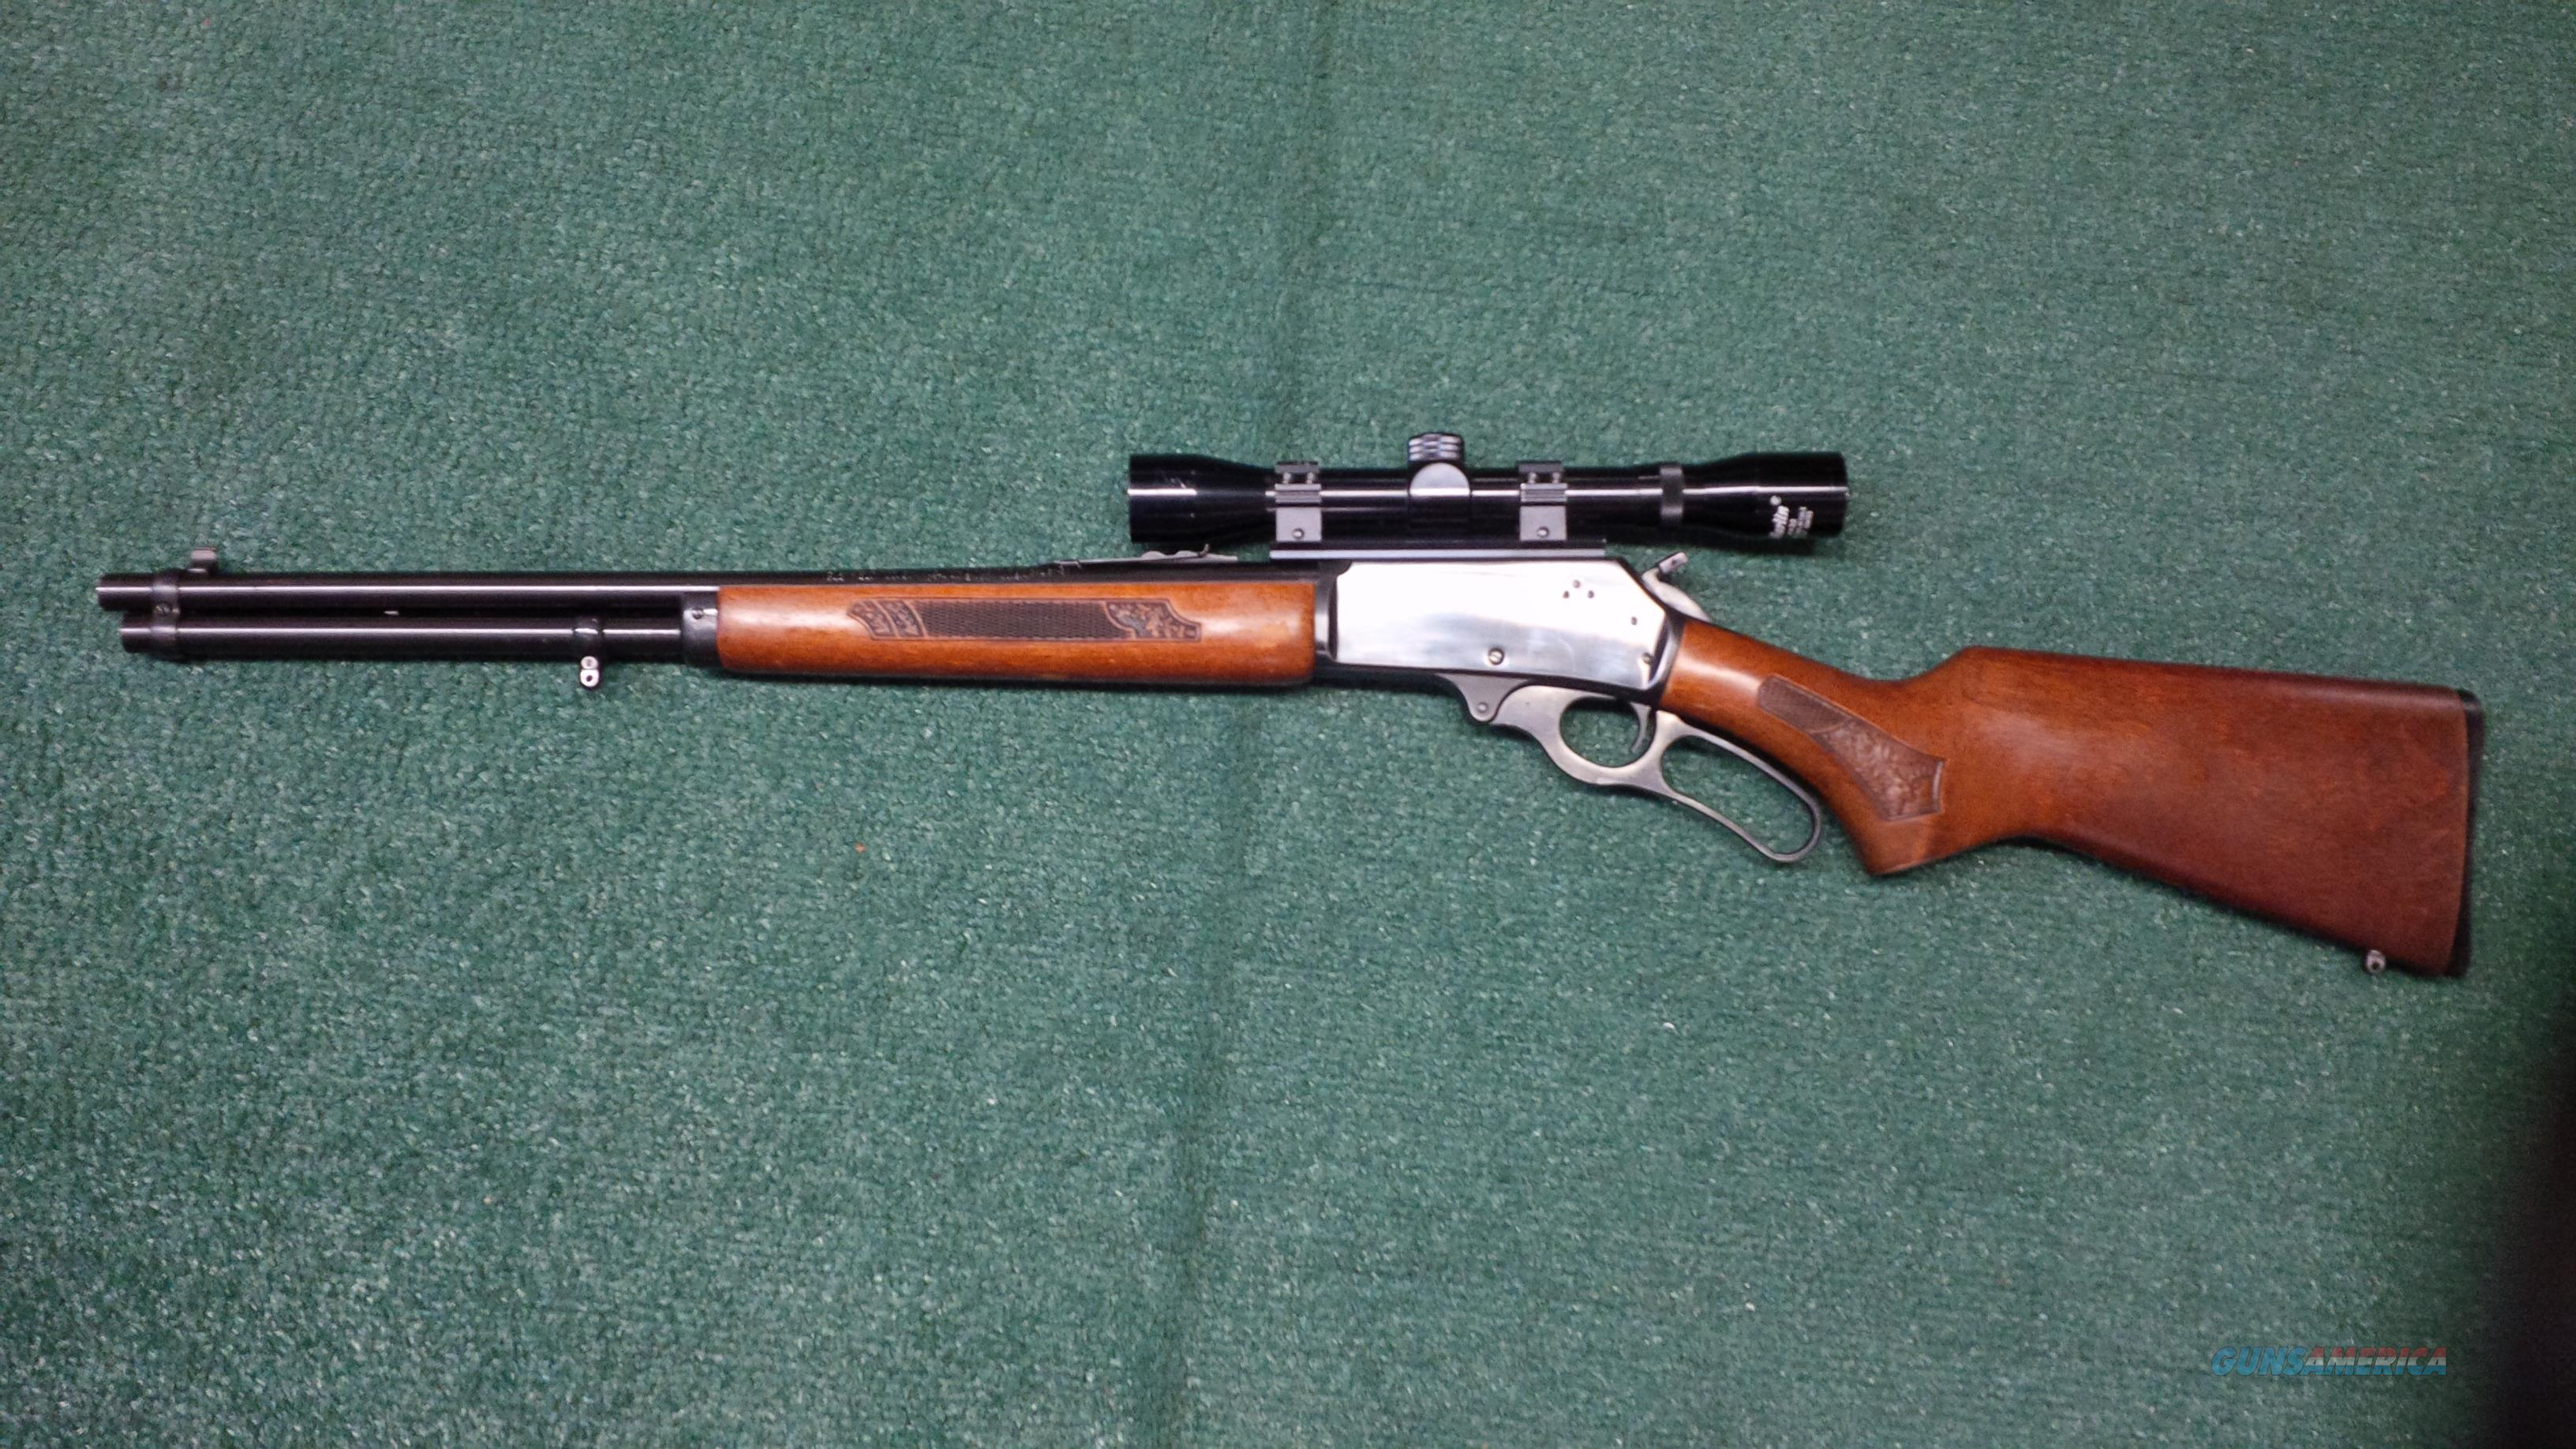 Marlin/Glenfield .30-.30 Winchester Lever Action (JM Stamped) 30A With 4X Marlin Scope  Guns > Rifles > Marlin Rifles > Modern > Lever Action